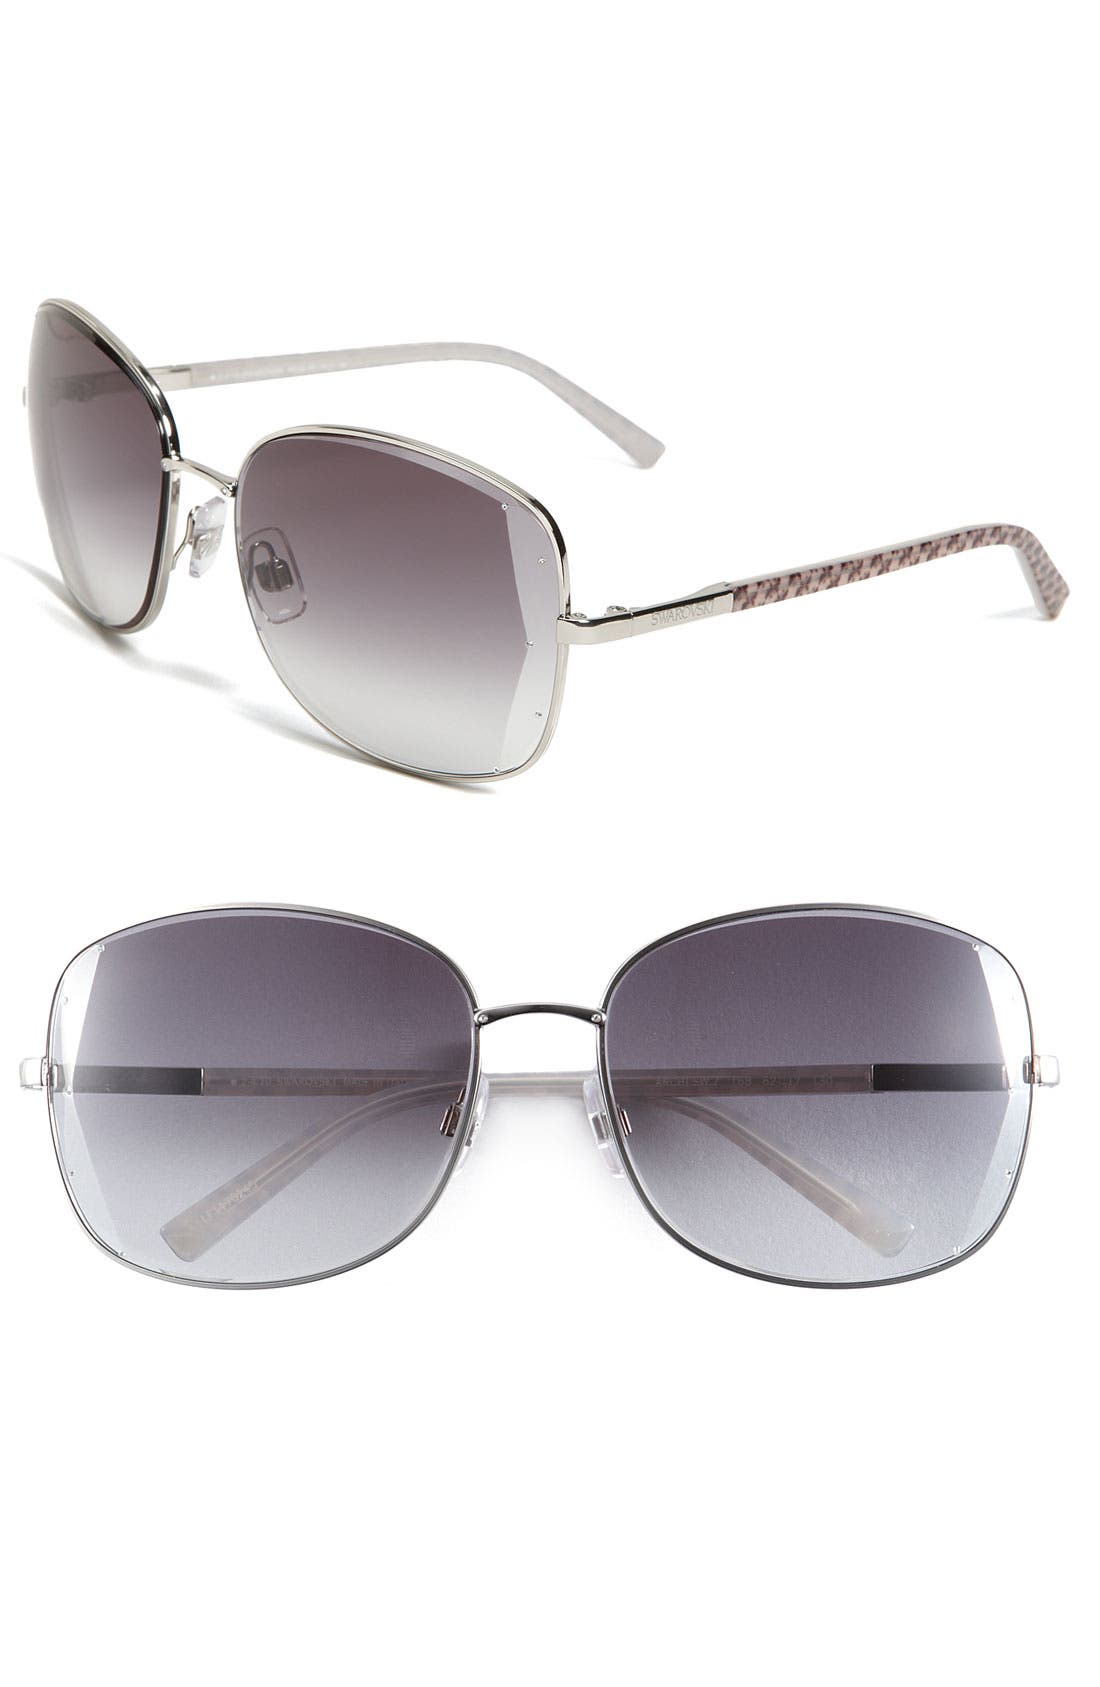 Main Image - Swarovski Beveled Edge Metal Sunglasses